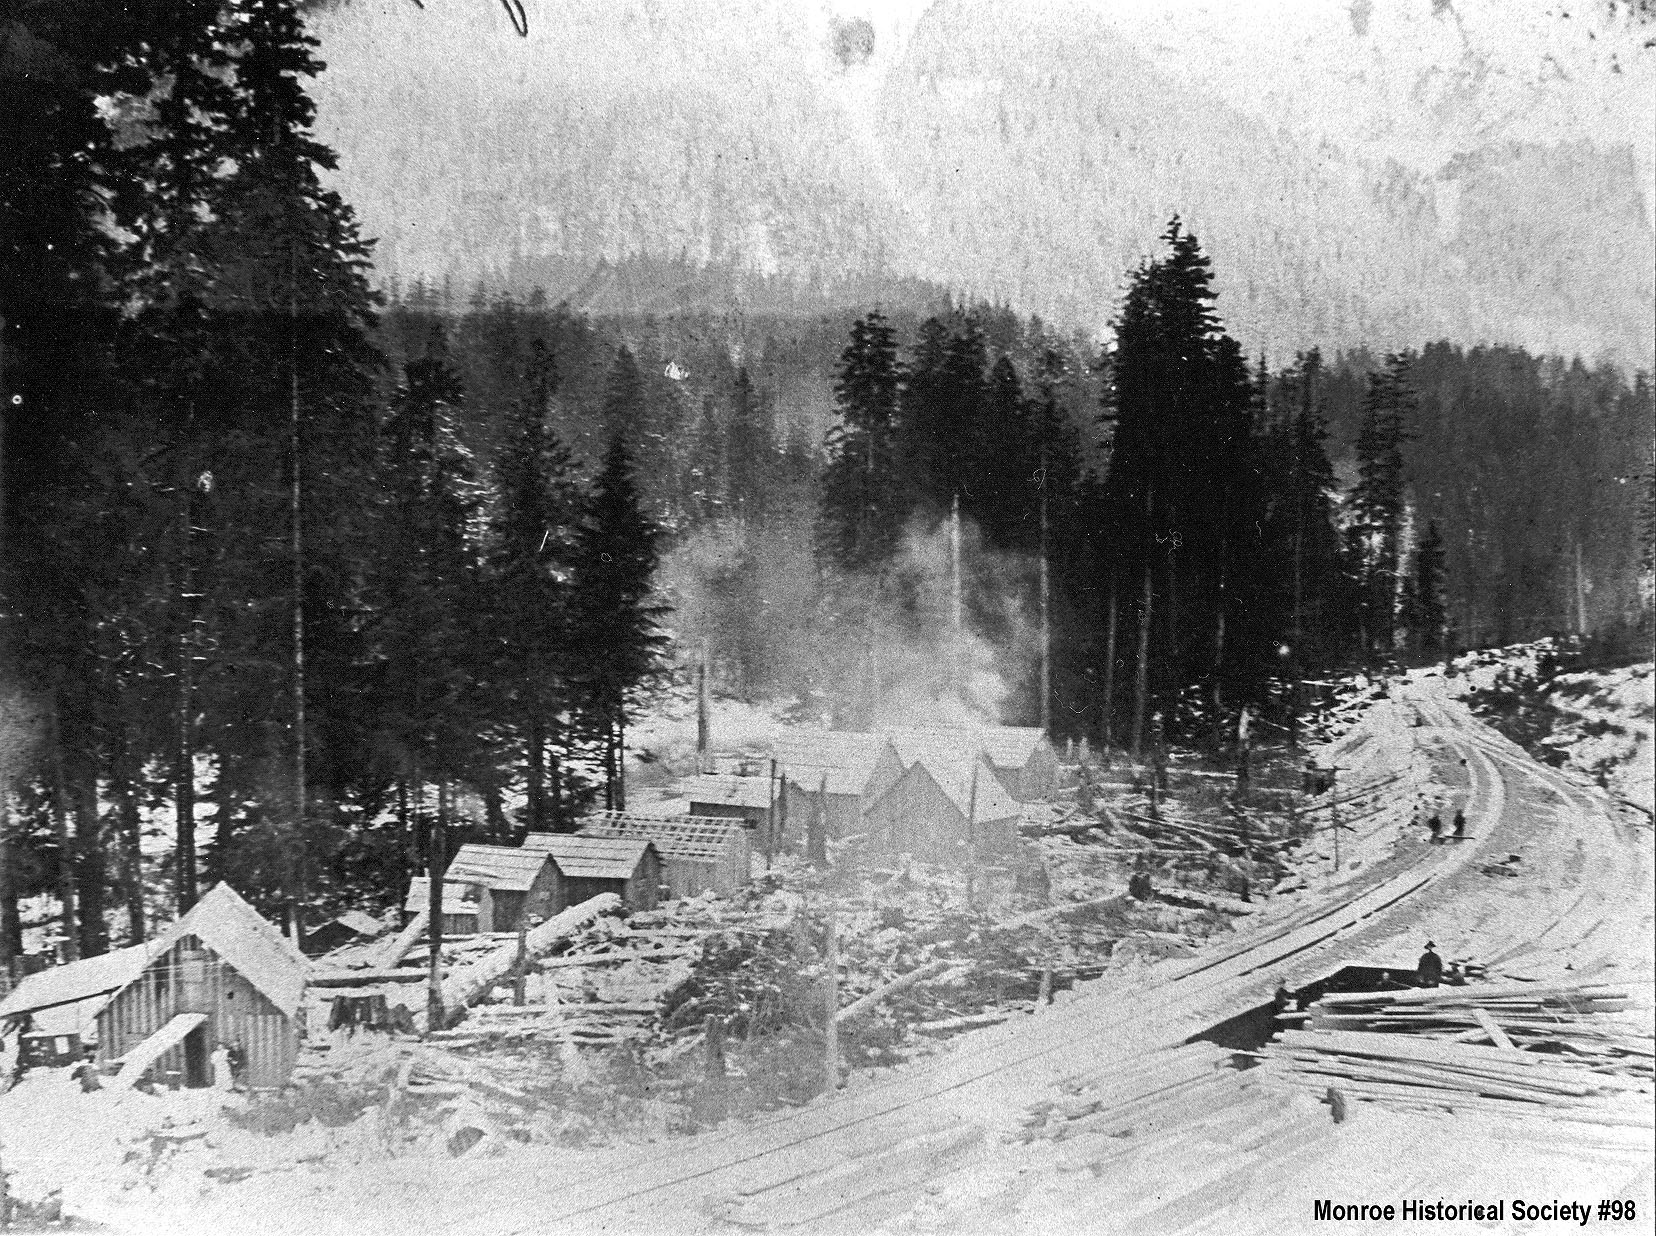 0098 – B.B.&R. Mill Camp (later Haybrook) in the snow, Sunset Falls near Index, winter 1908-09